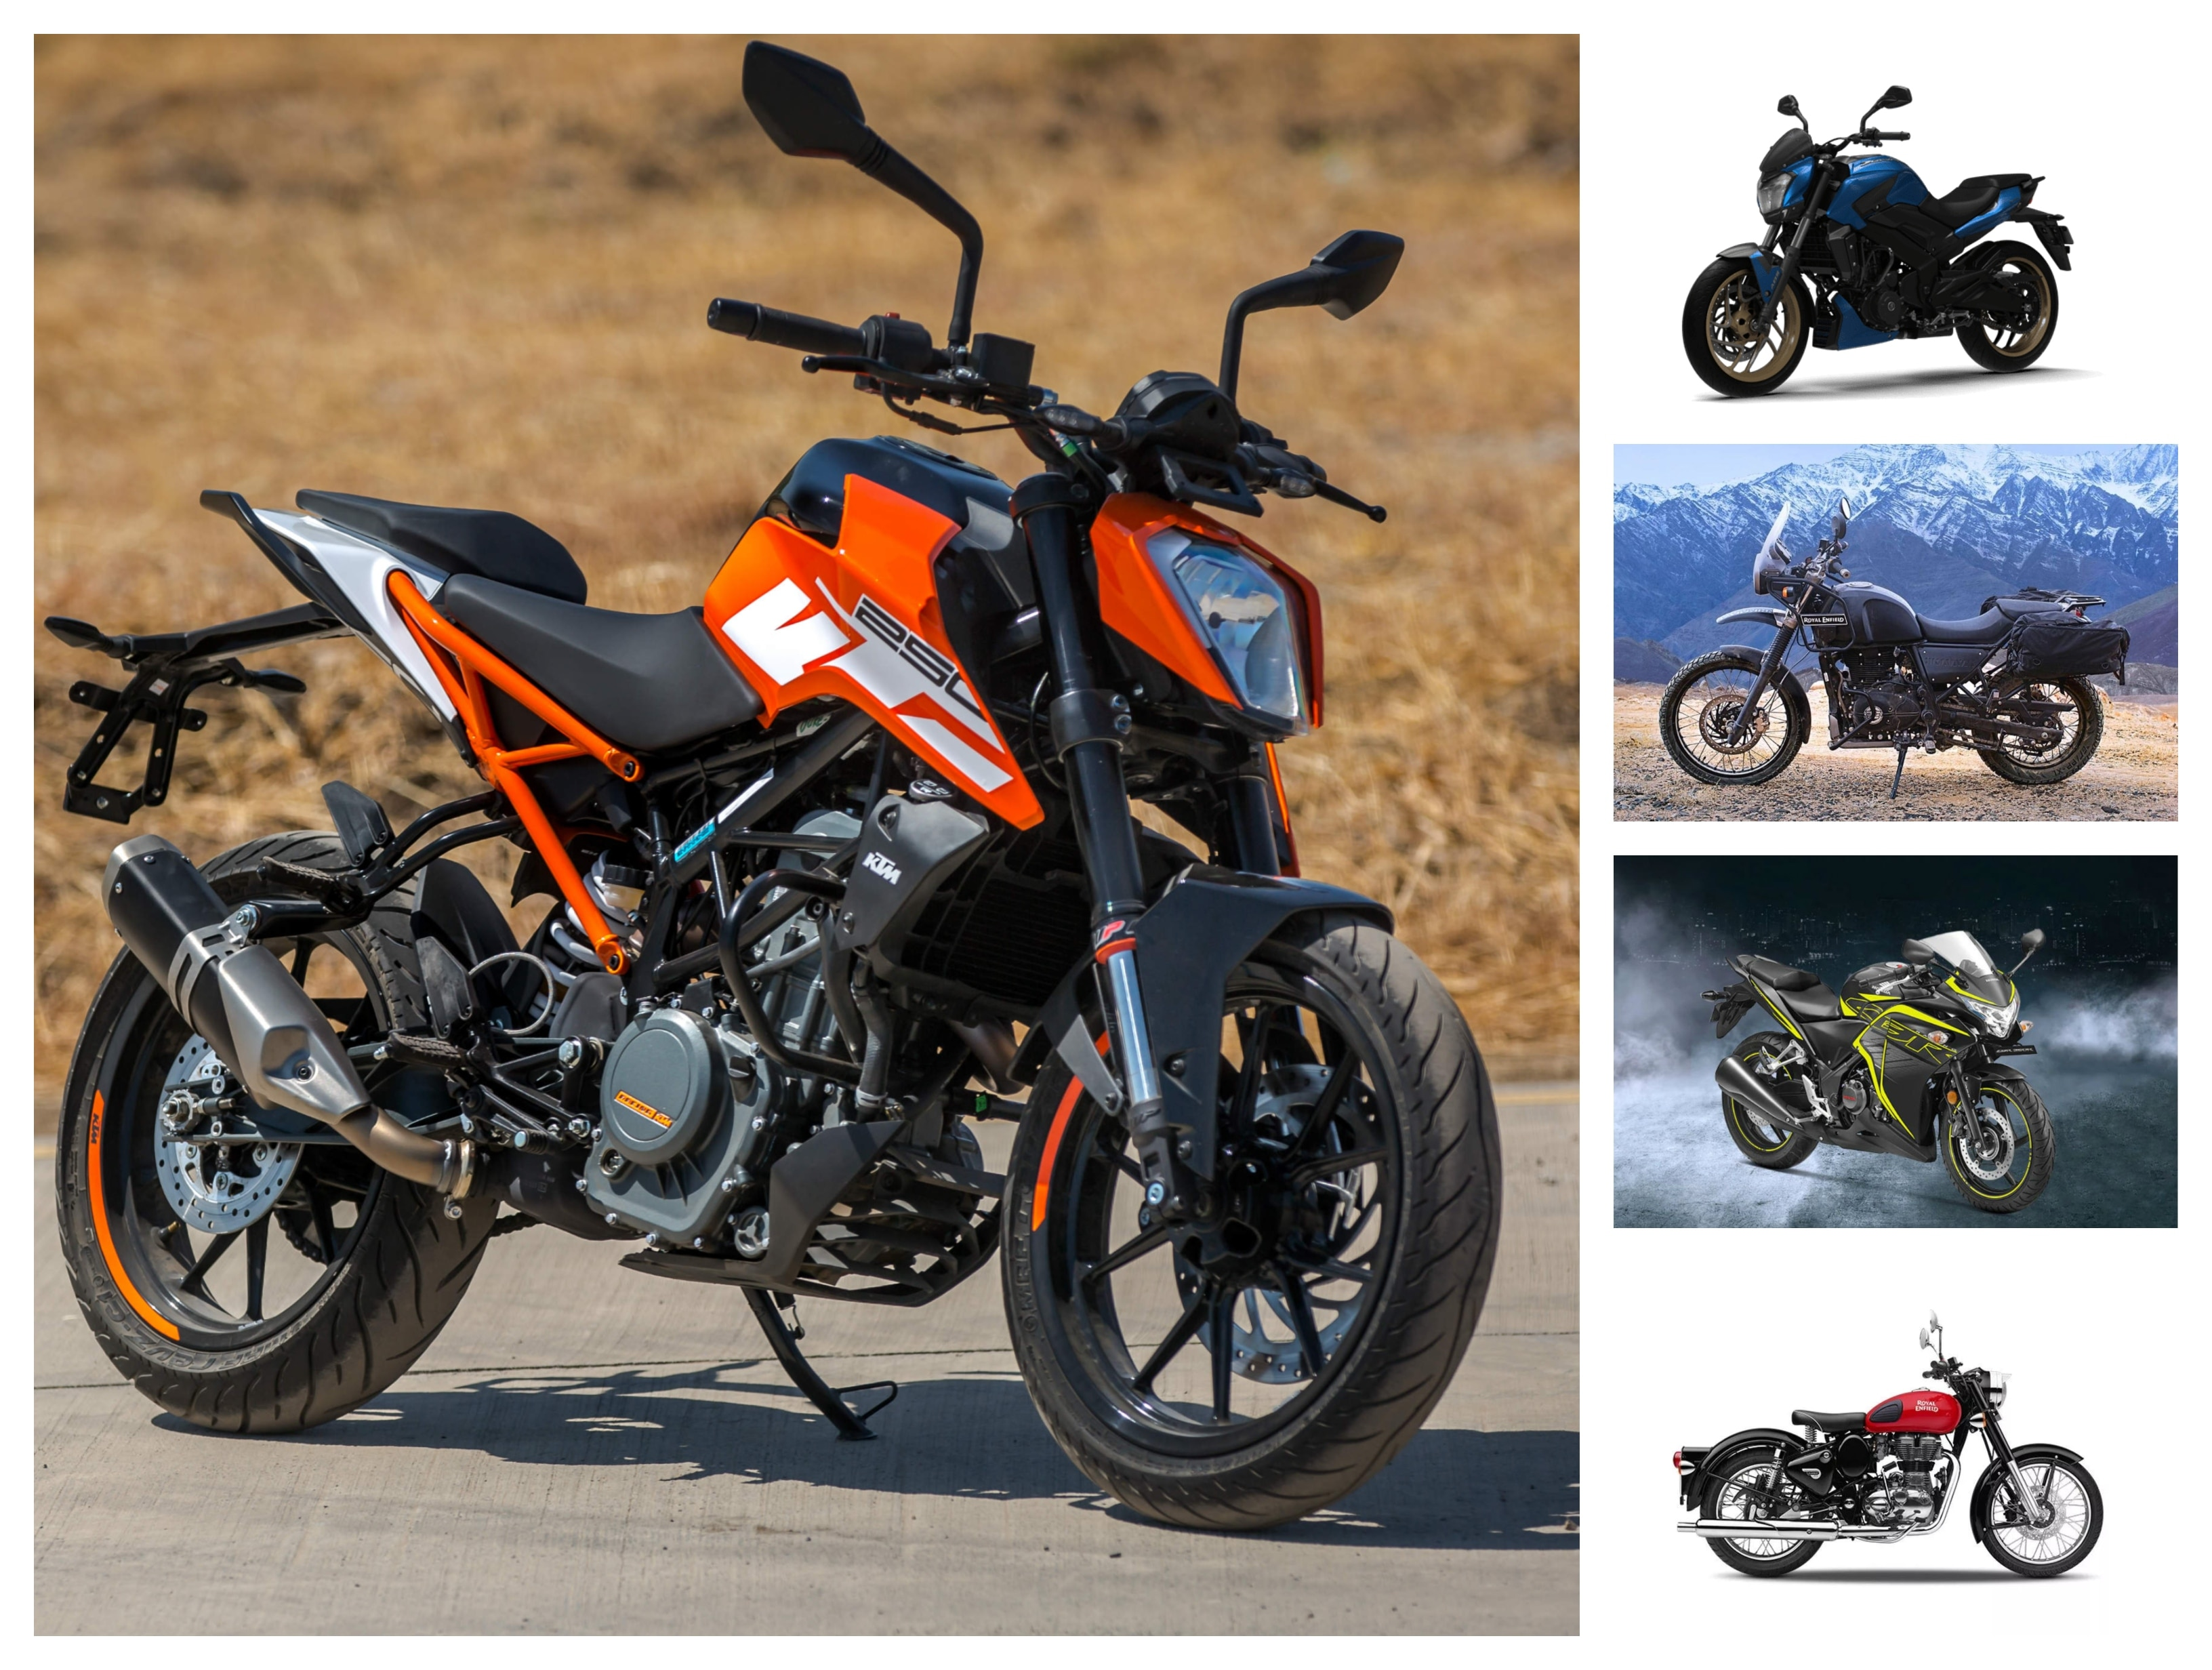 KTM 250 Duke: Same Price, Other Options